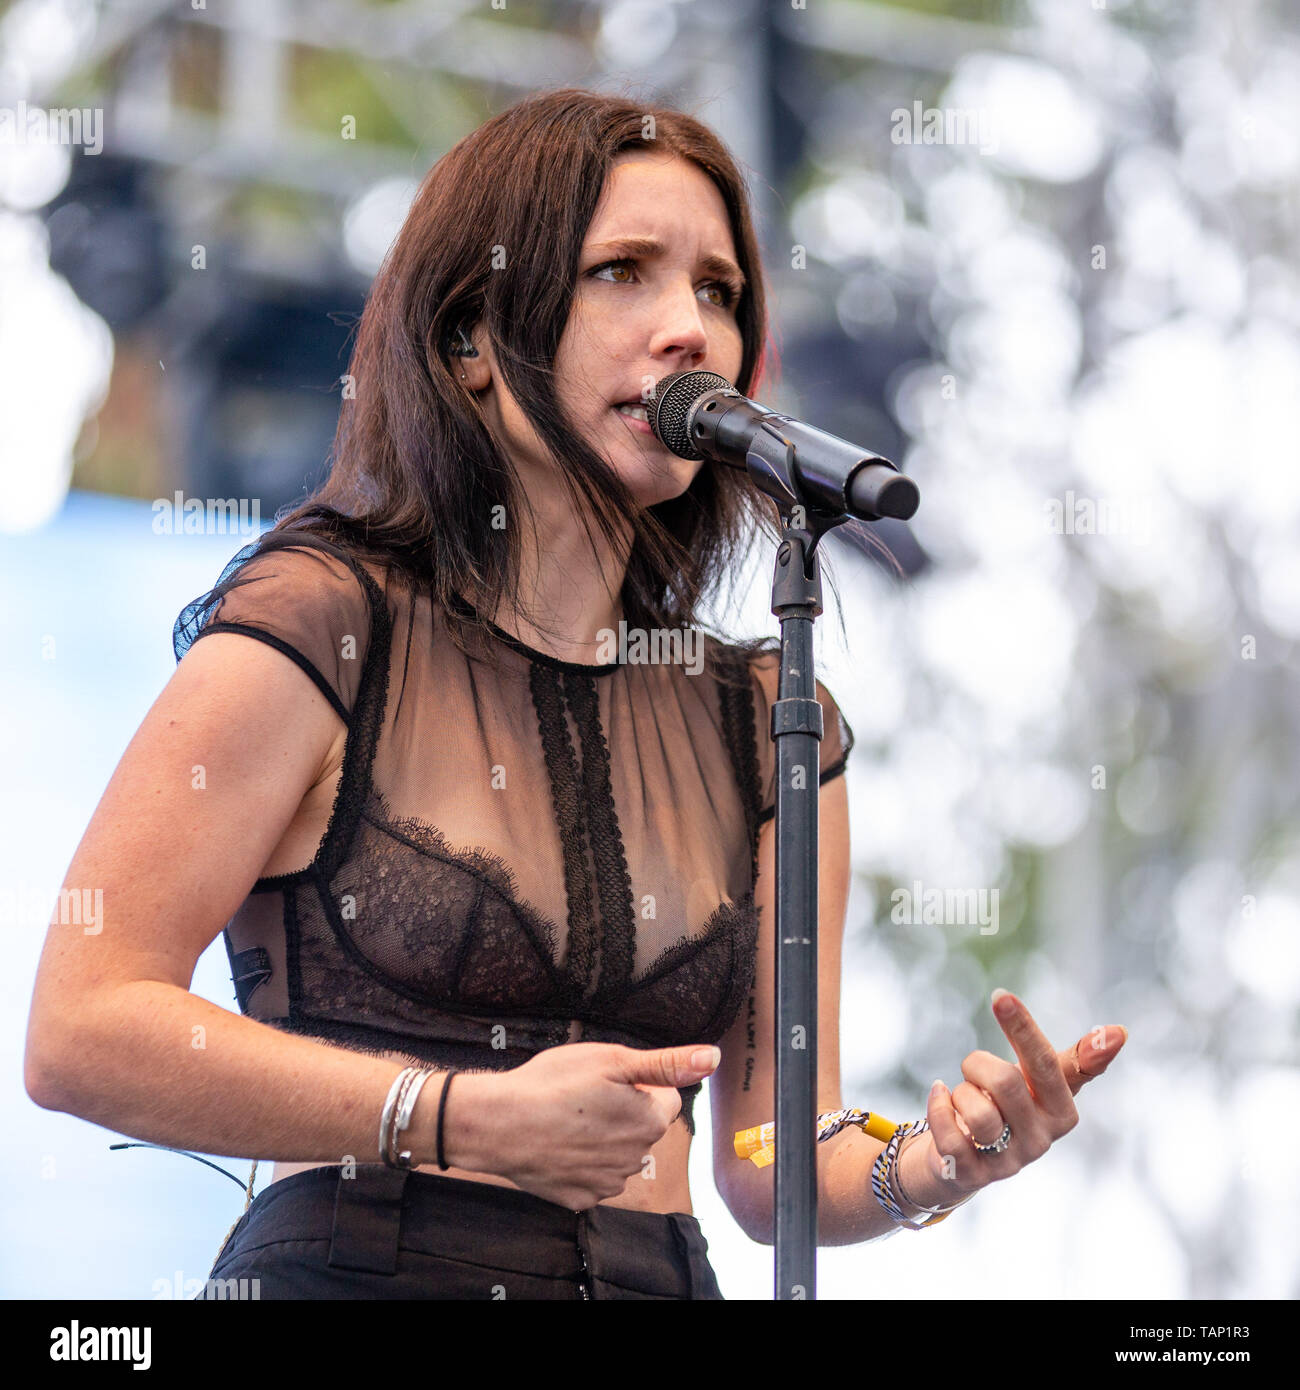 May 26 2019 Napa California U S Chelsea Lee Of Shaed During The Bottlerock Music Festival In Napa California Credit Image C Daniel Deslover Zuma Wire Stock Photo Alamy